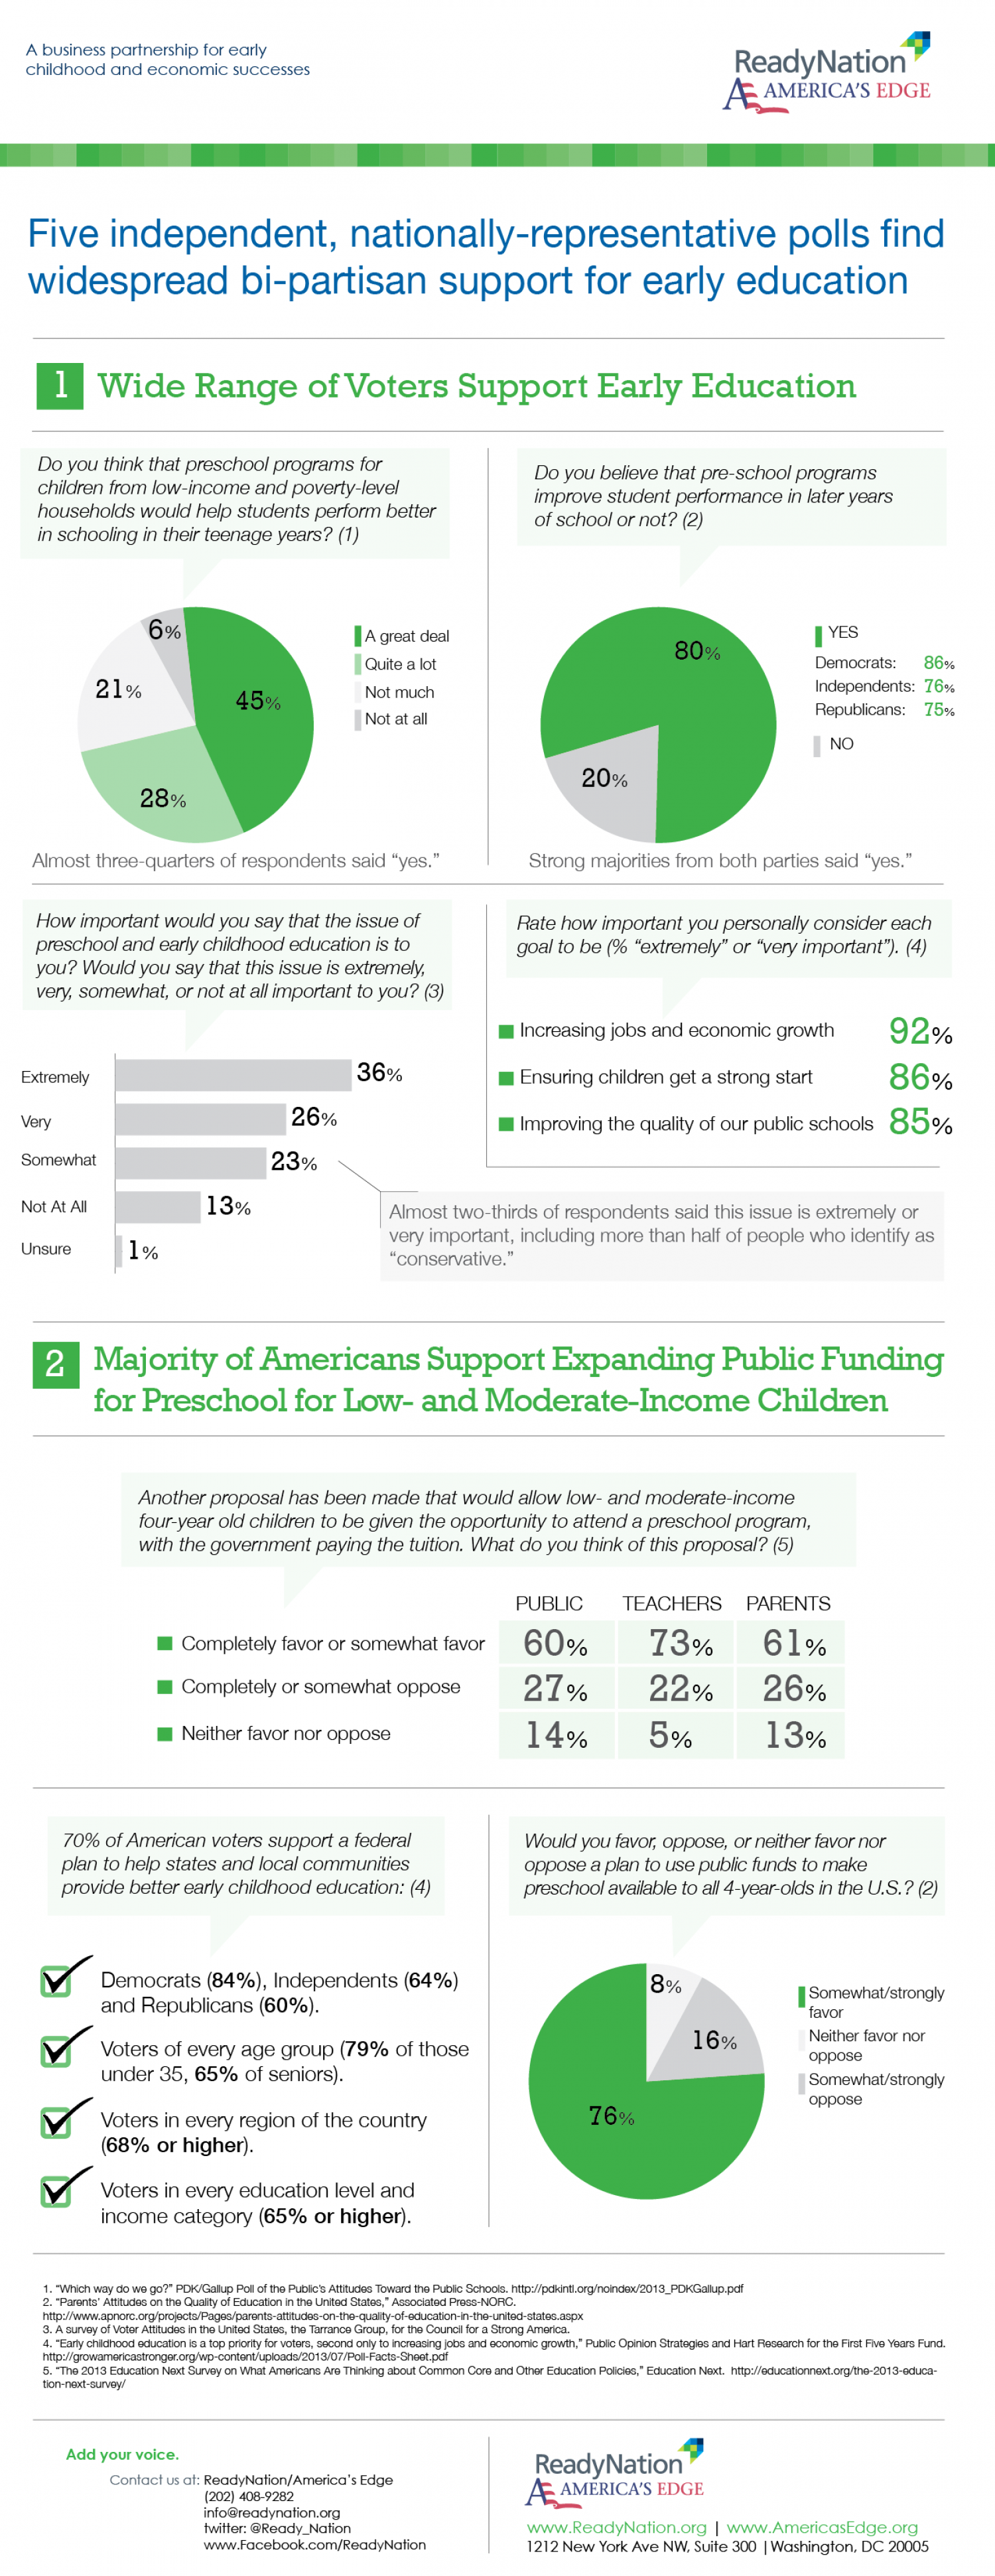 Five Independent, Nationally-Representative Polls Find Widespread Bi-Partisan Support for Early Education Infographic